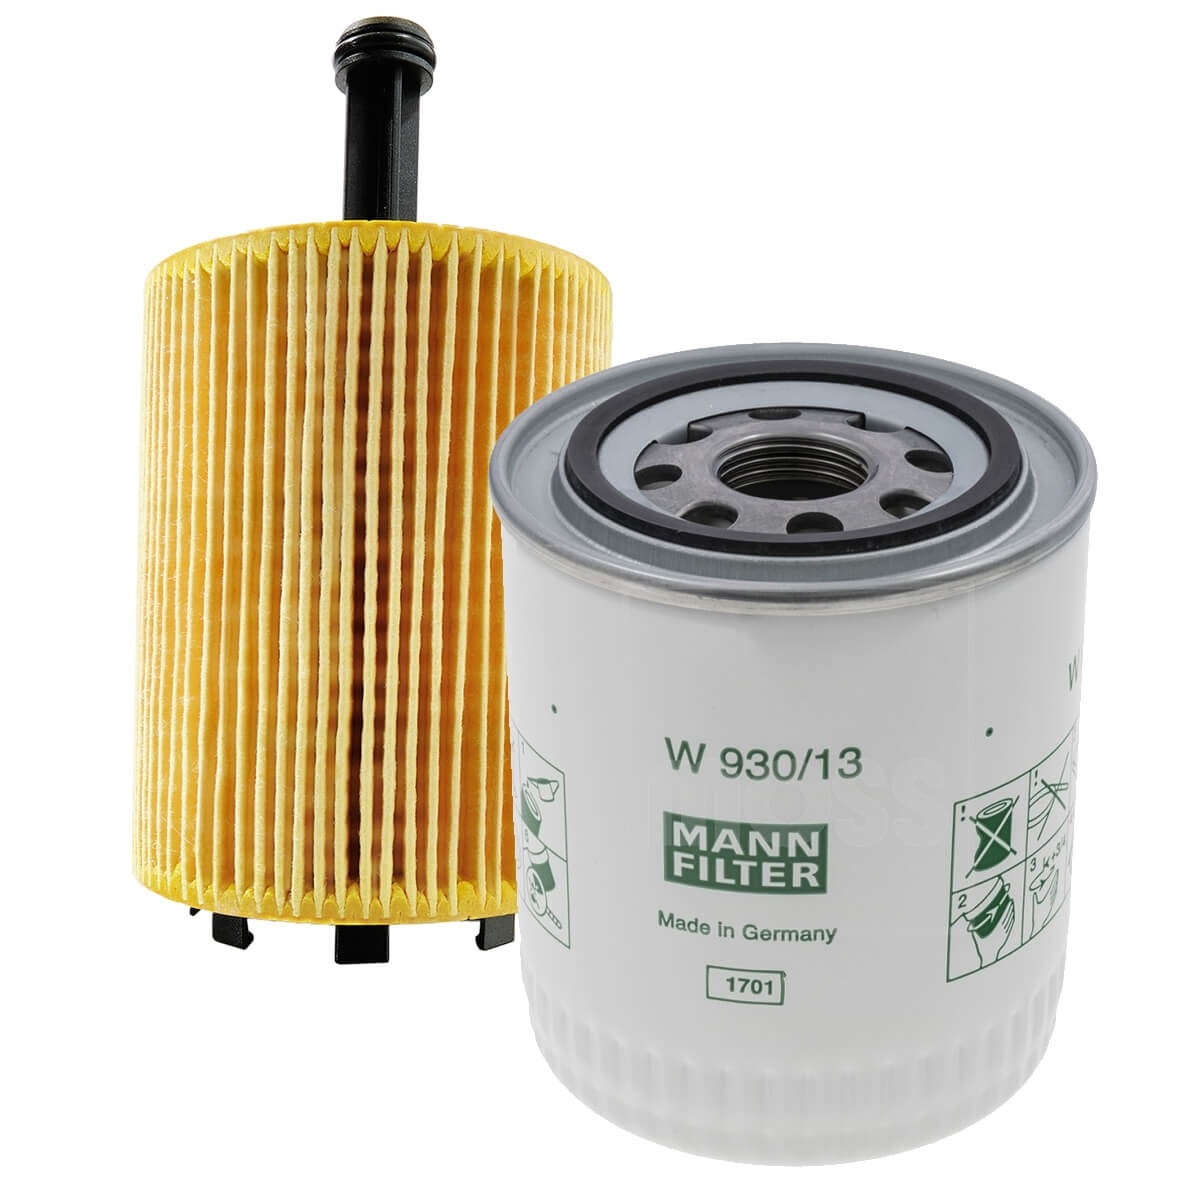 CITROEN C4 SPACETOURER Oil Filter